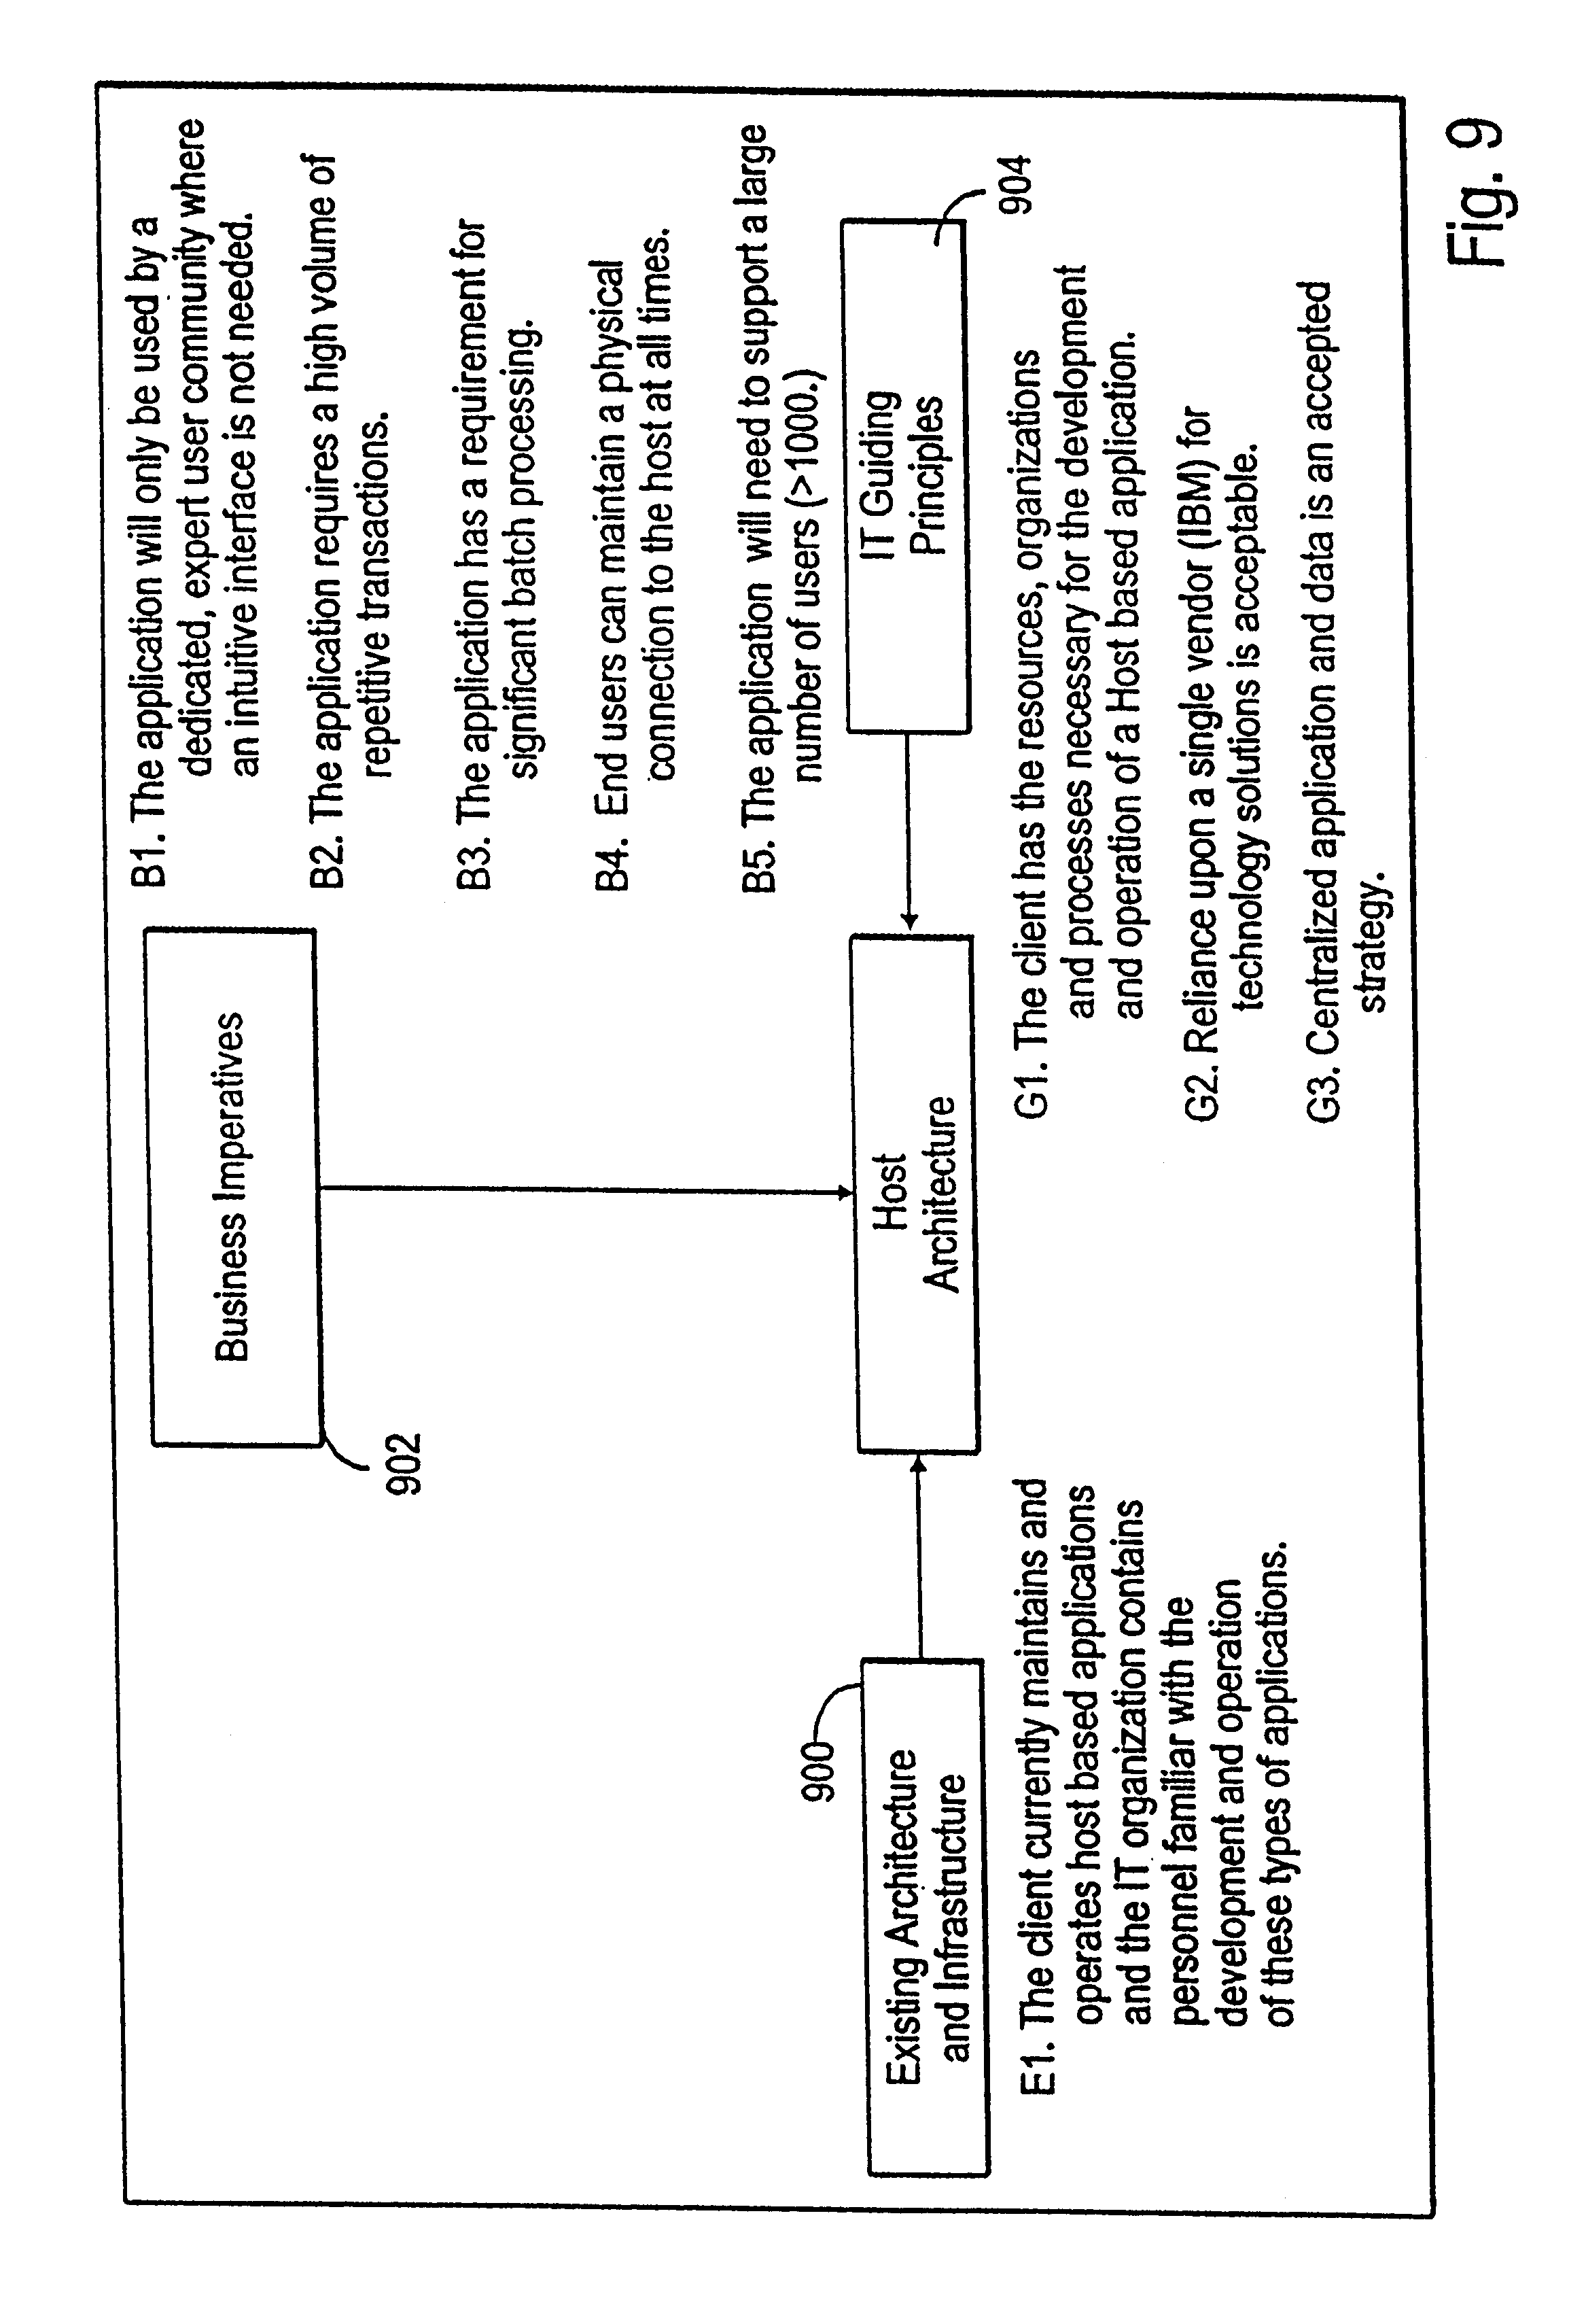 Patent Us 6529948 B1 Discrete Passive Tone Control Circuit Above Does Not Violate The